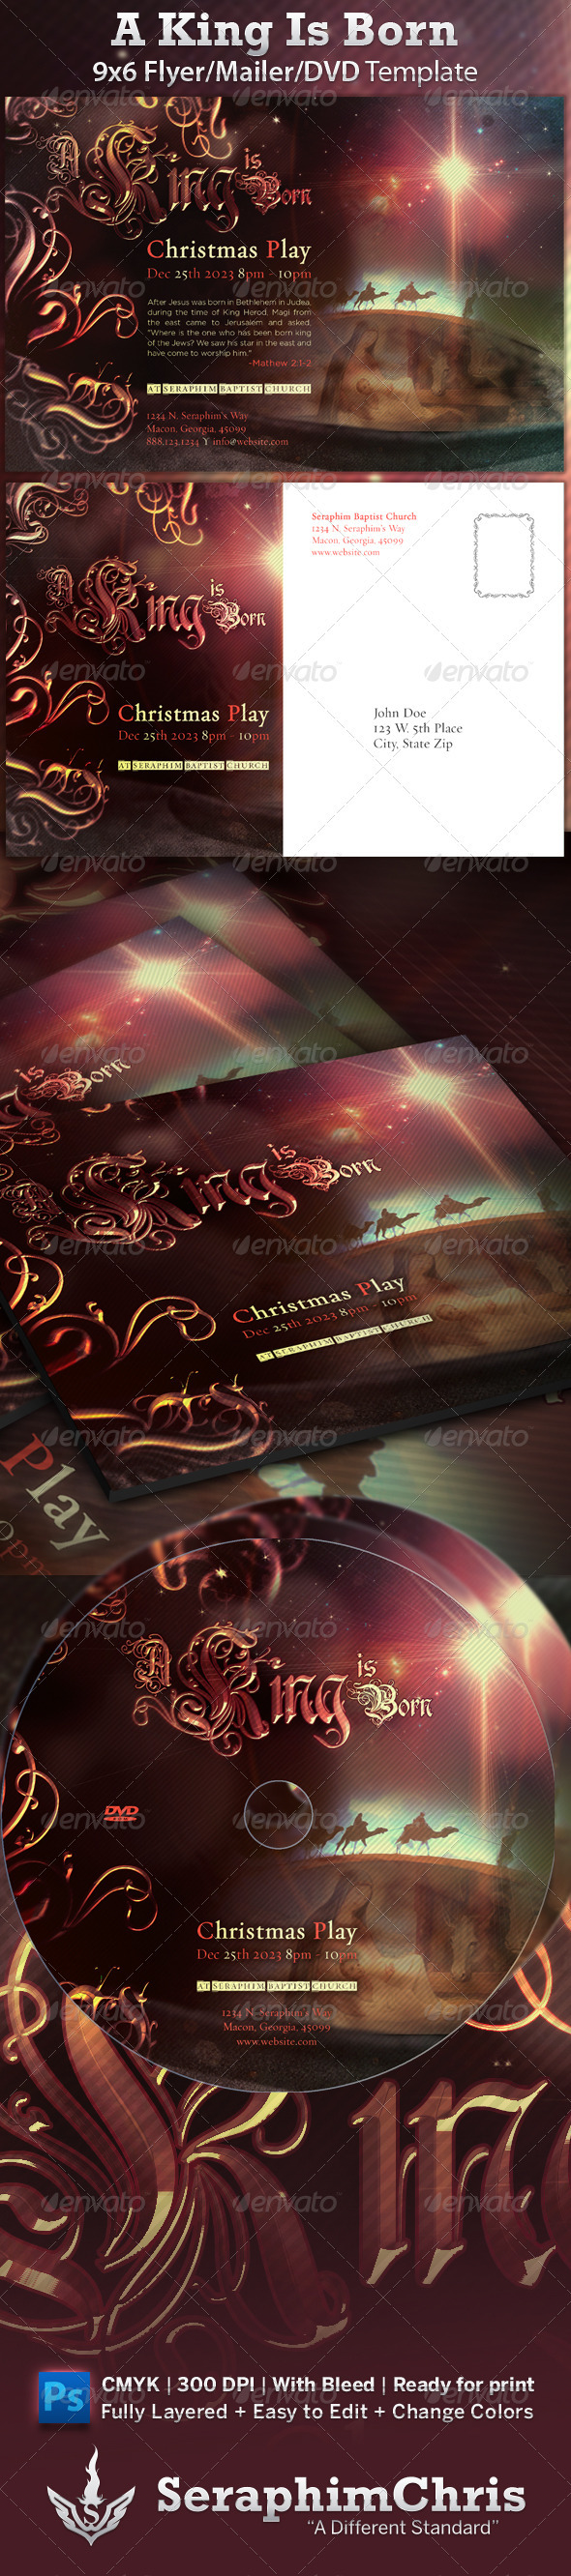 GraphicRiver A King Is Born Christmas Church Flyer 825946